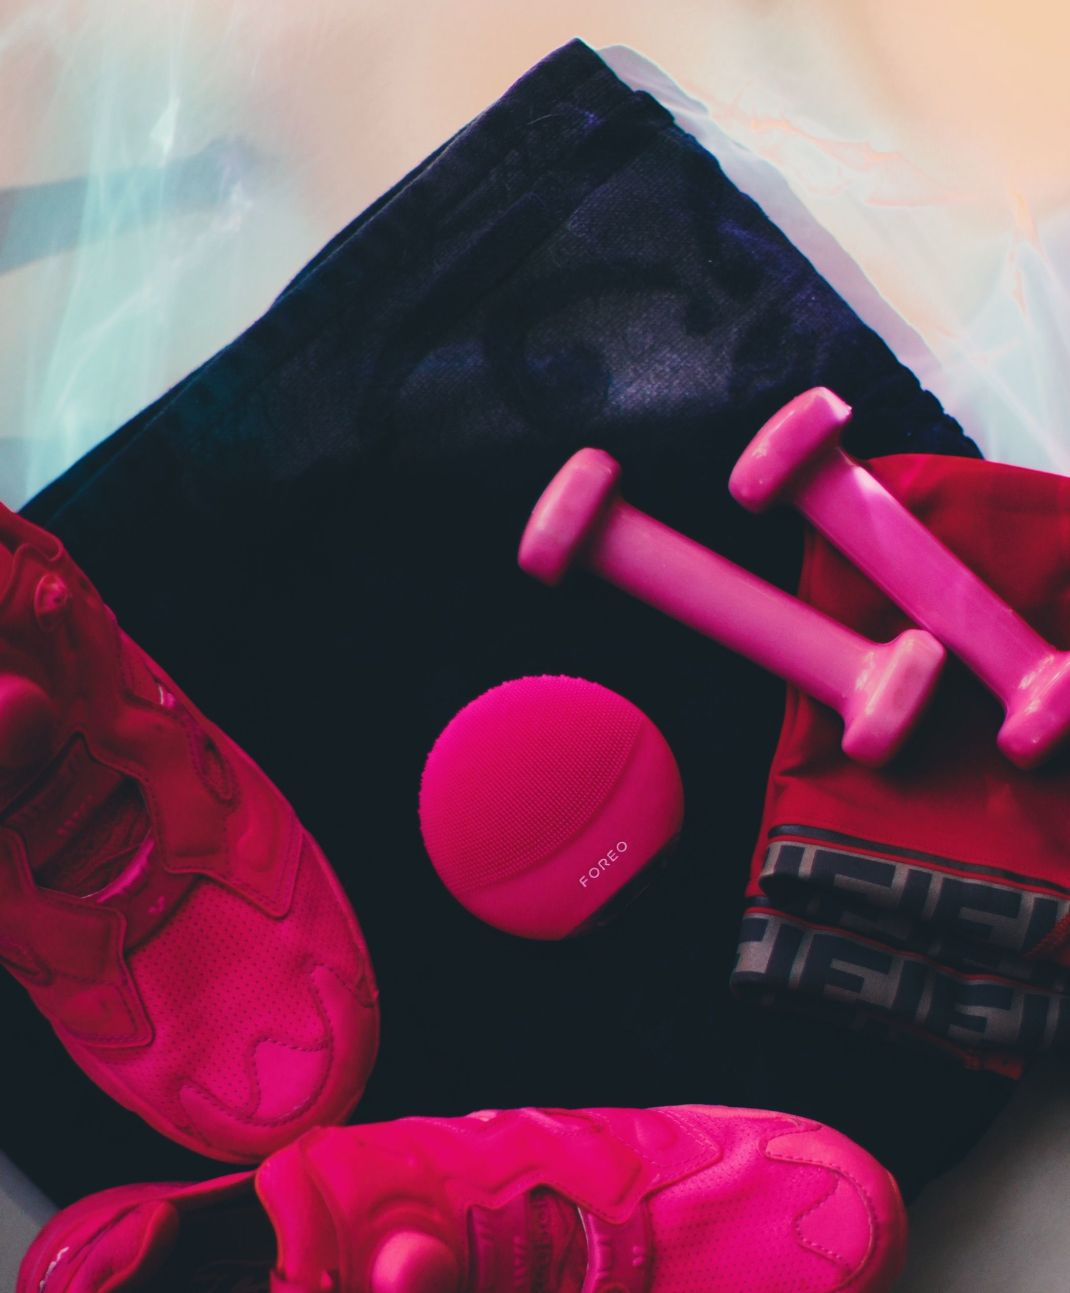 FOREO LUNA mini 3 review – the perfect device for cleansing face after workout